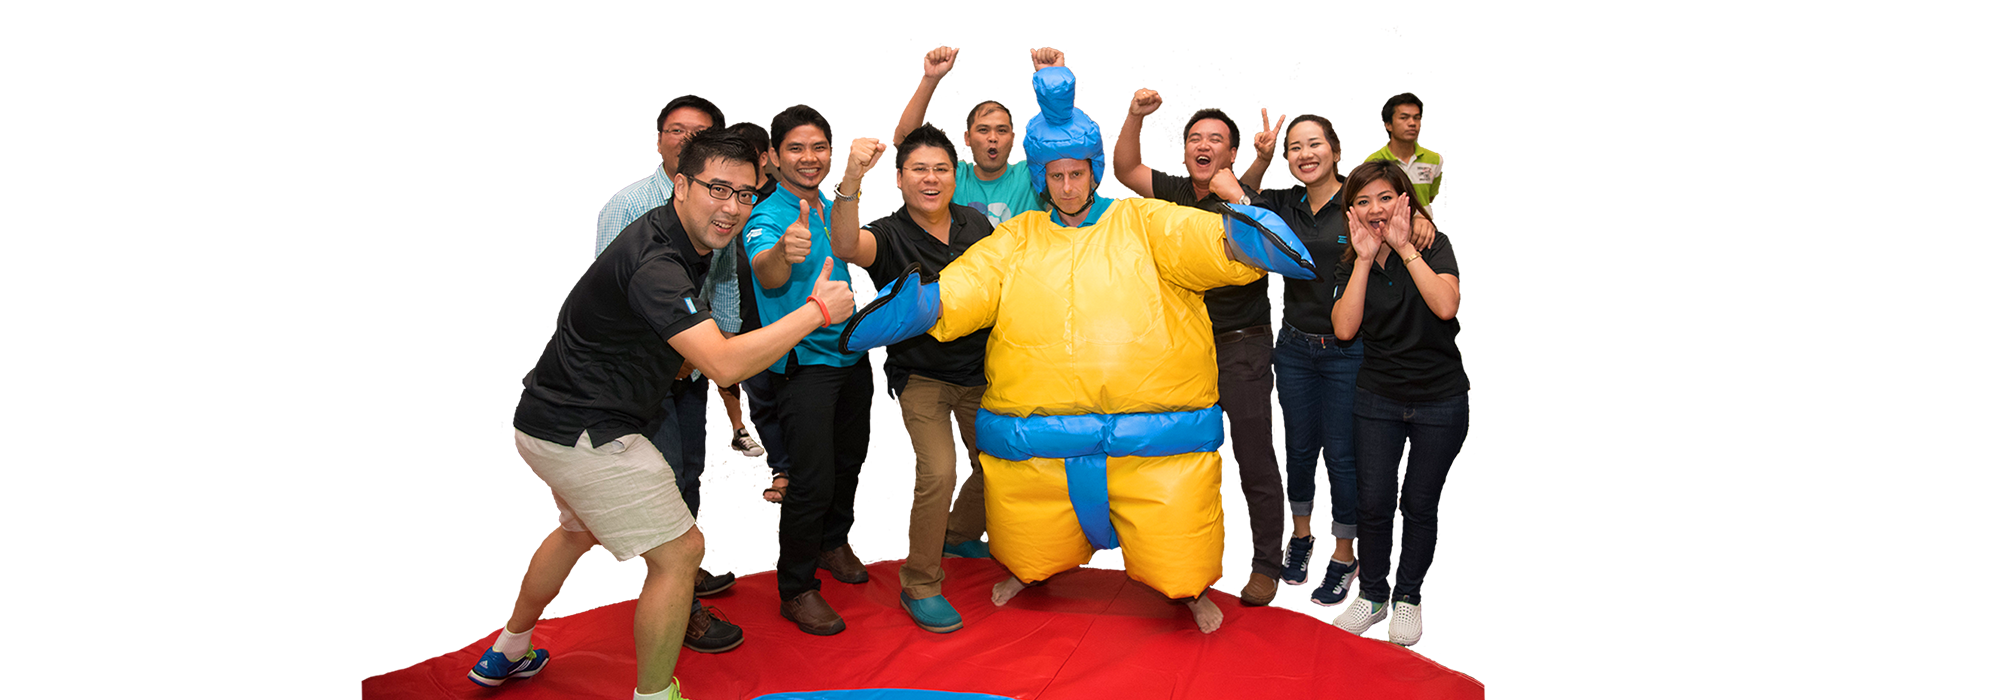 Sumo Wrestling competition is a fun and entertaining team building activity to be organized as part of a theme dinner or Christmas party.